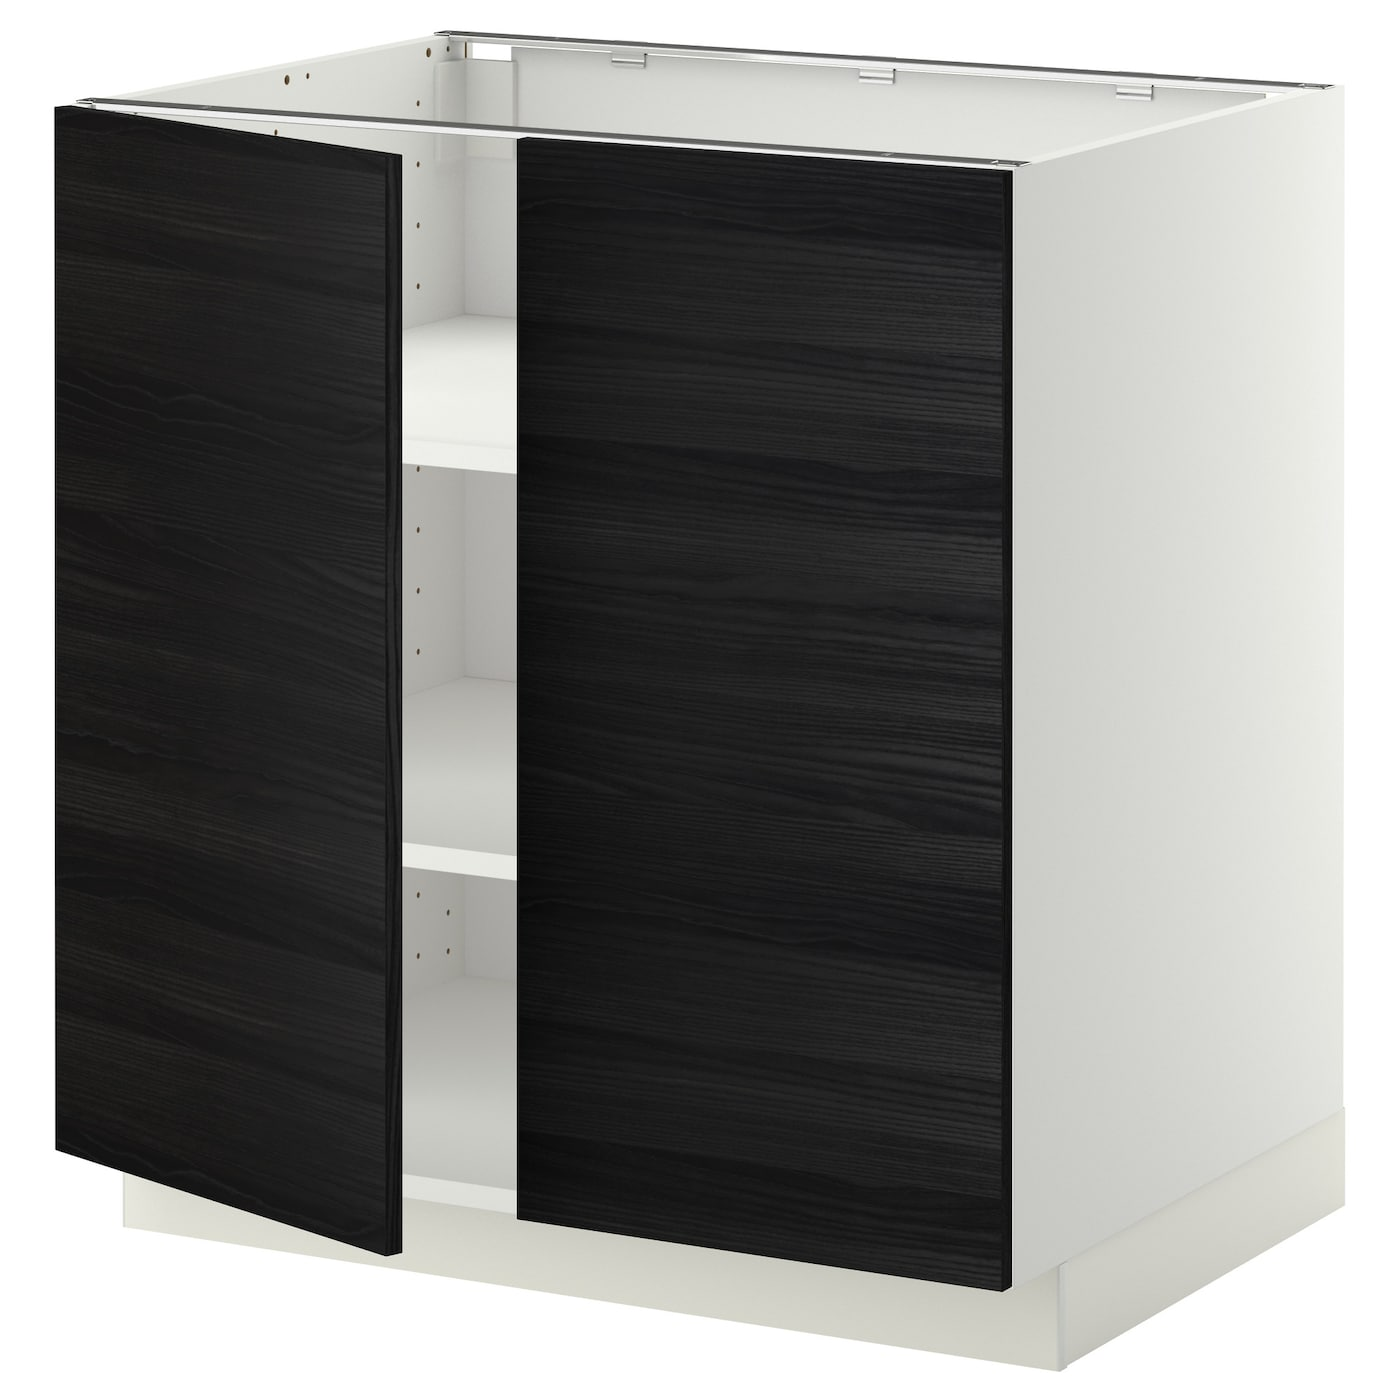 IKEA METOD base cabinet with shelves/2 doors Sturdy frame construction, 18 mm thick.